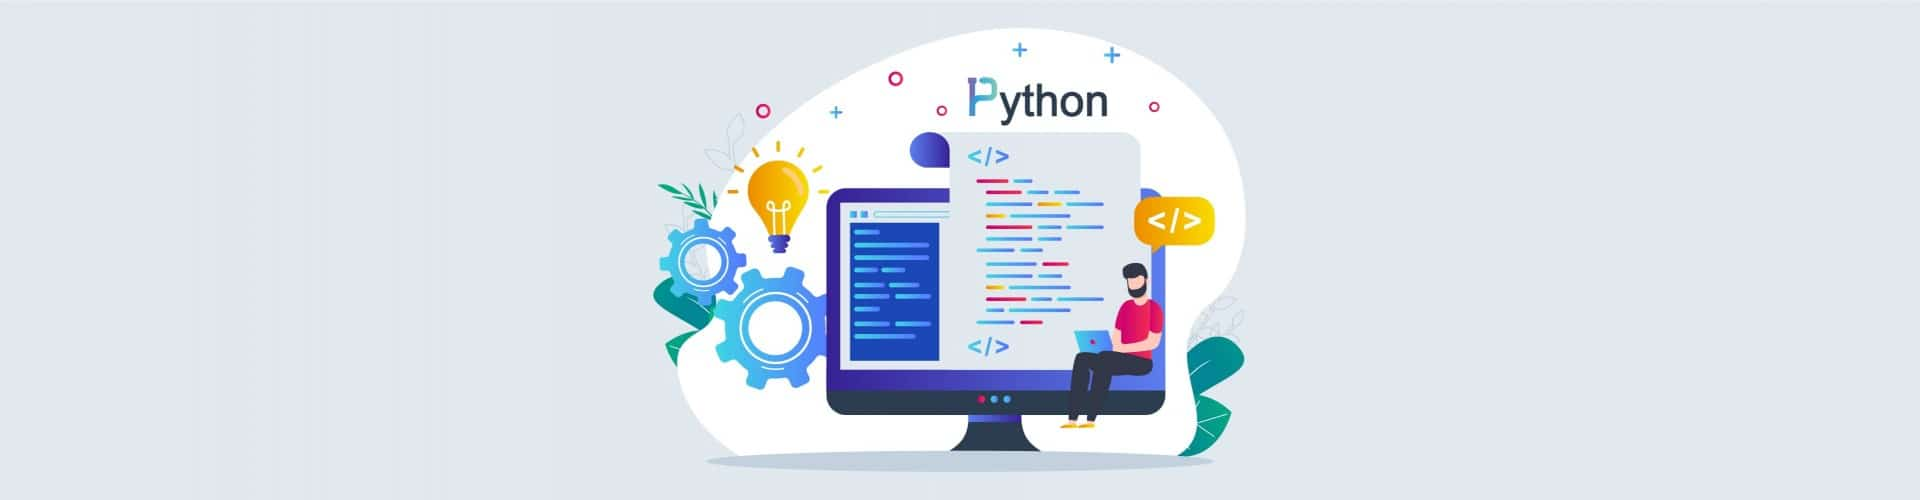 Advantages And Disadvantages Of Python For Your Business